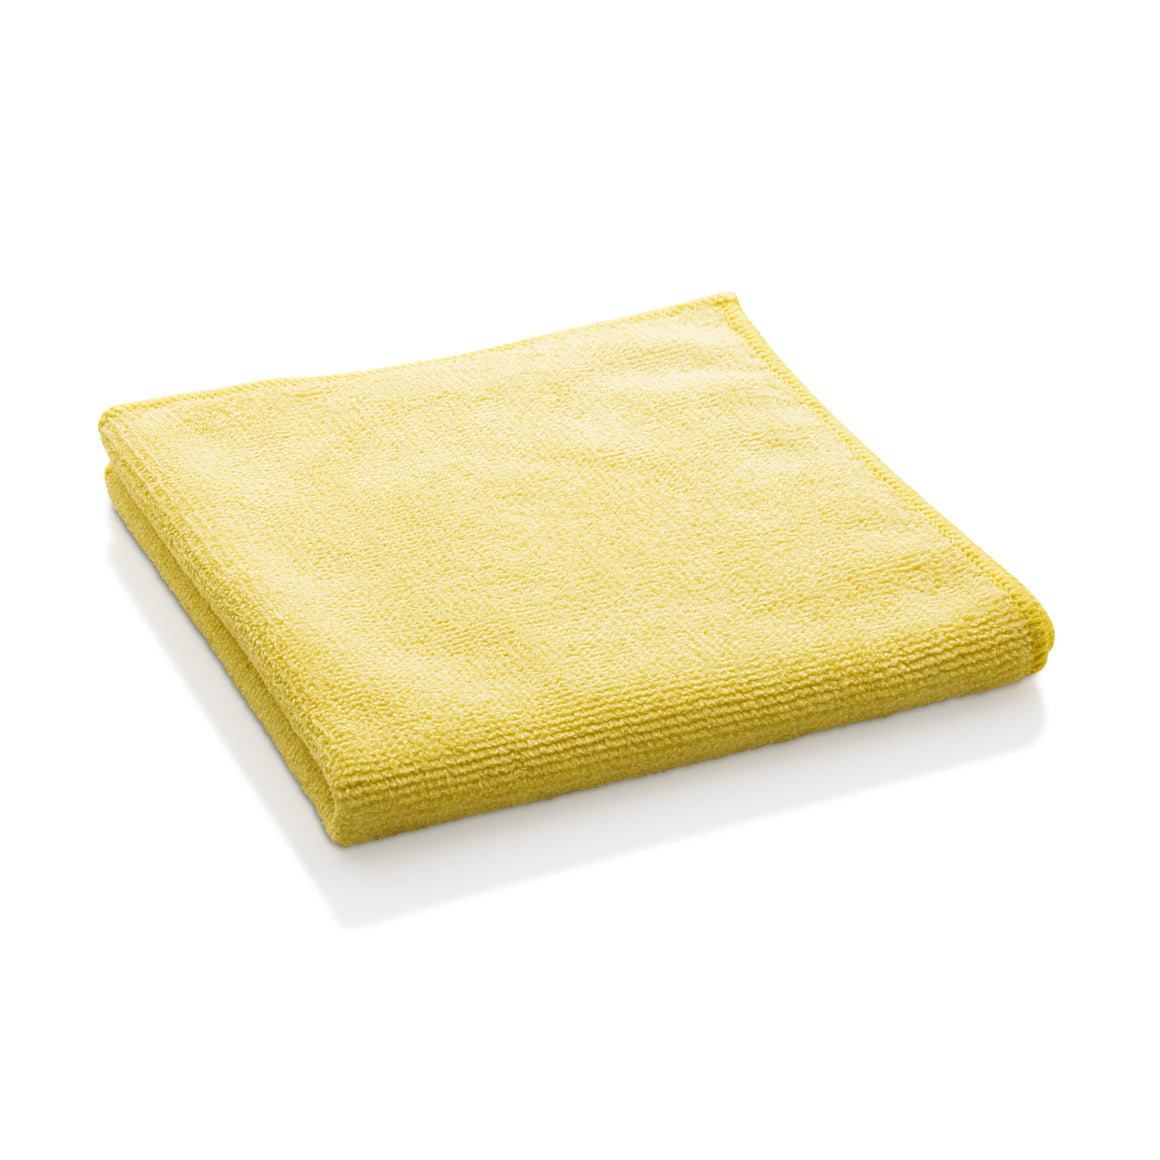 General Purpose Cloth - Durable Premium Microfiber for Chemical-Free Cleaning - Just Add Water - Daffodil Yellow